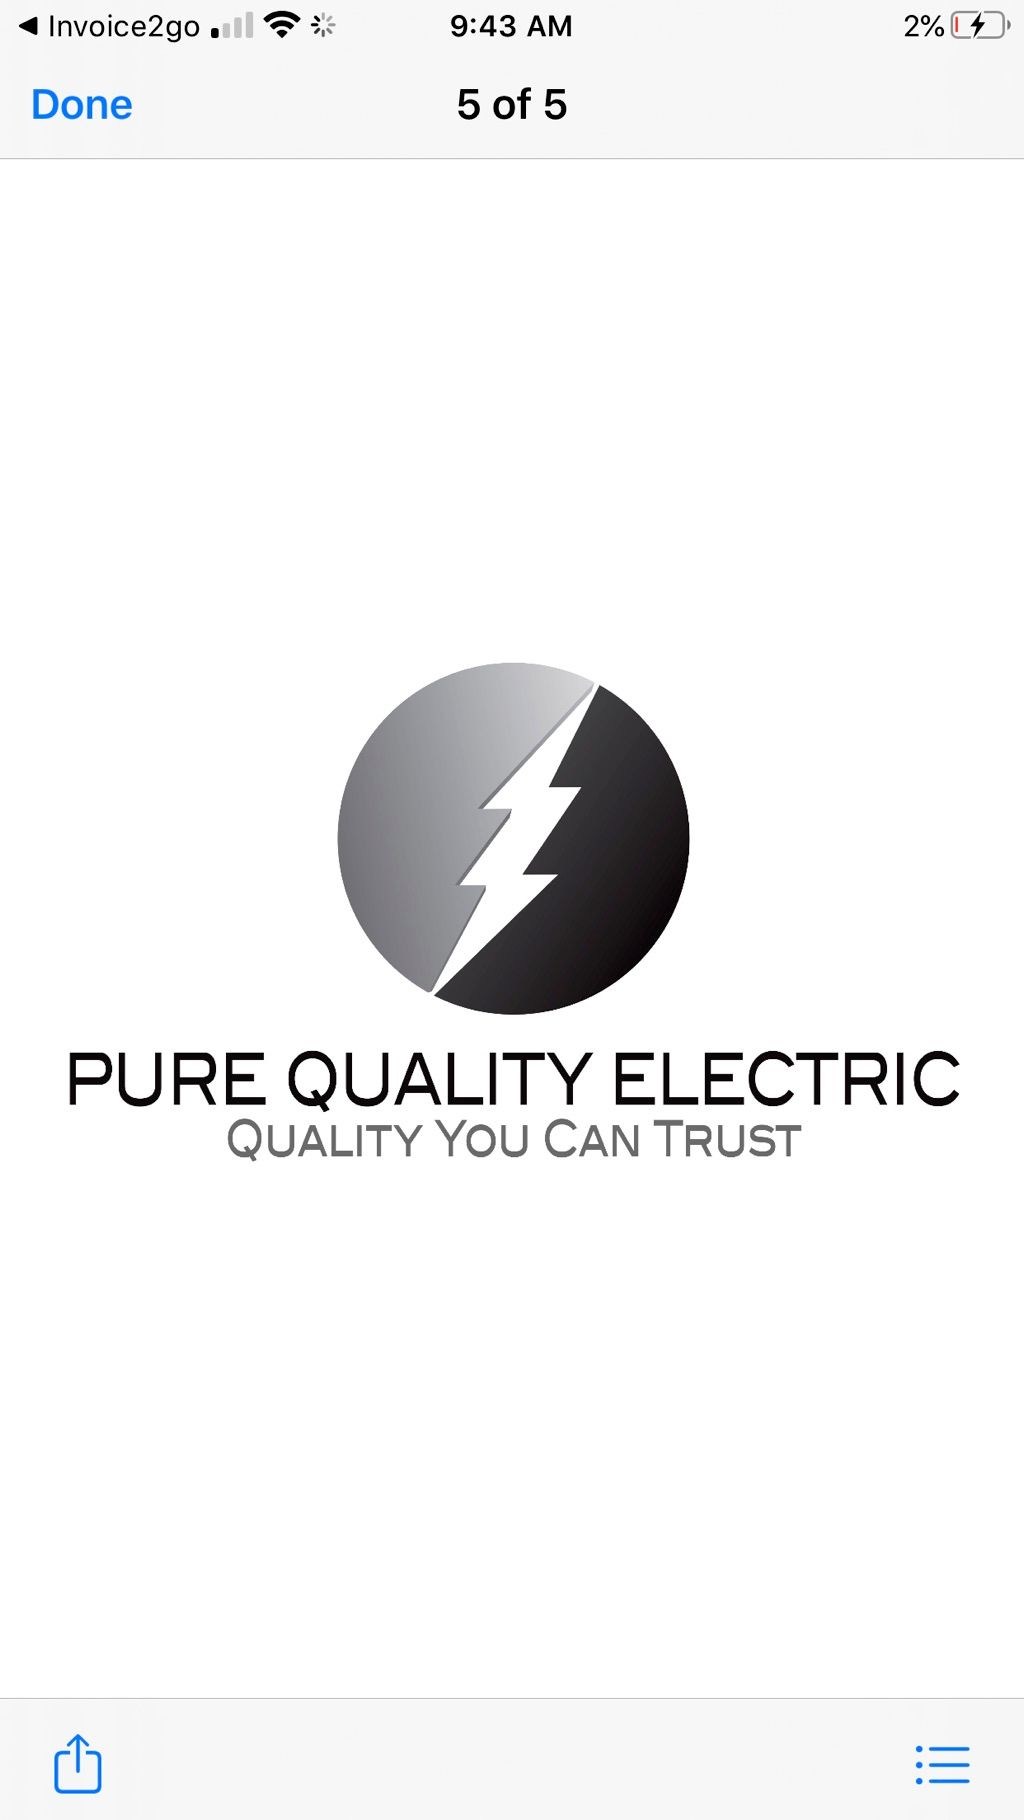 Pure Quality Electric